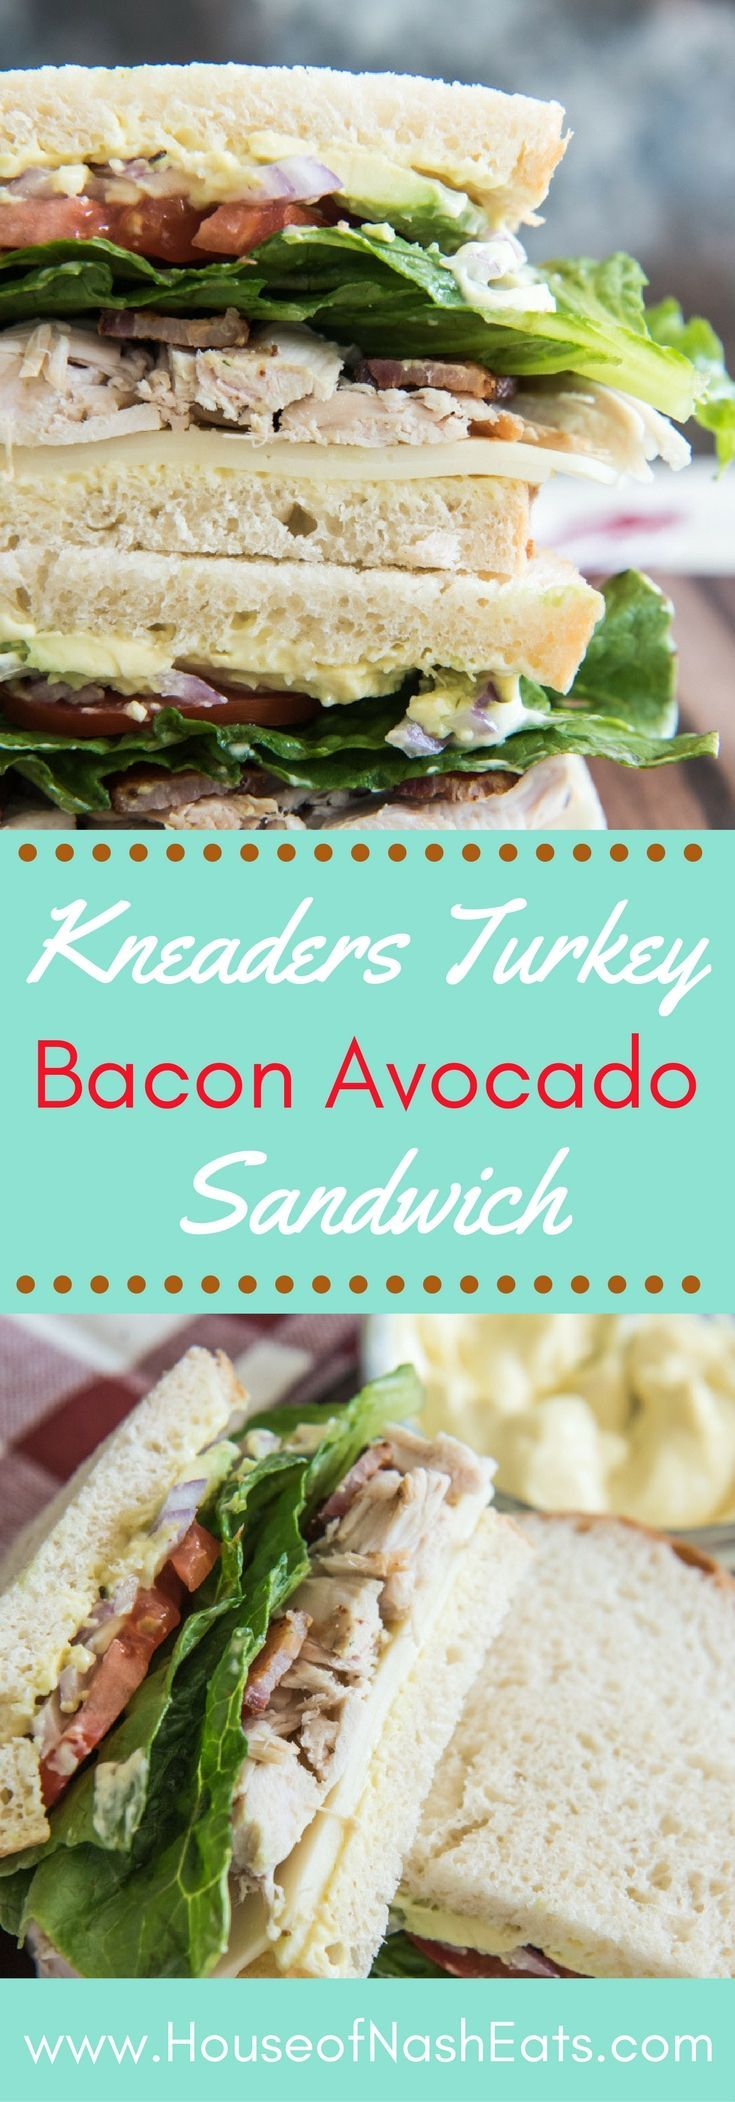 This Turkey Bacon Avocado Sandwich is inspired by my favorite bakery & cafe in Utah. Kneaders makes the most amazing food, and this sandwich is my go-to item on their menu, especially with their mustard-mayo that gets slathered on the bread! #sandwich #t